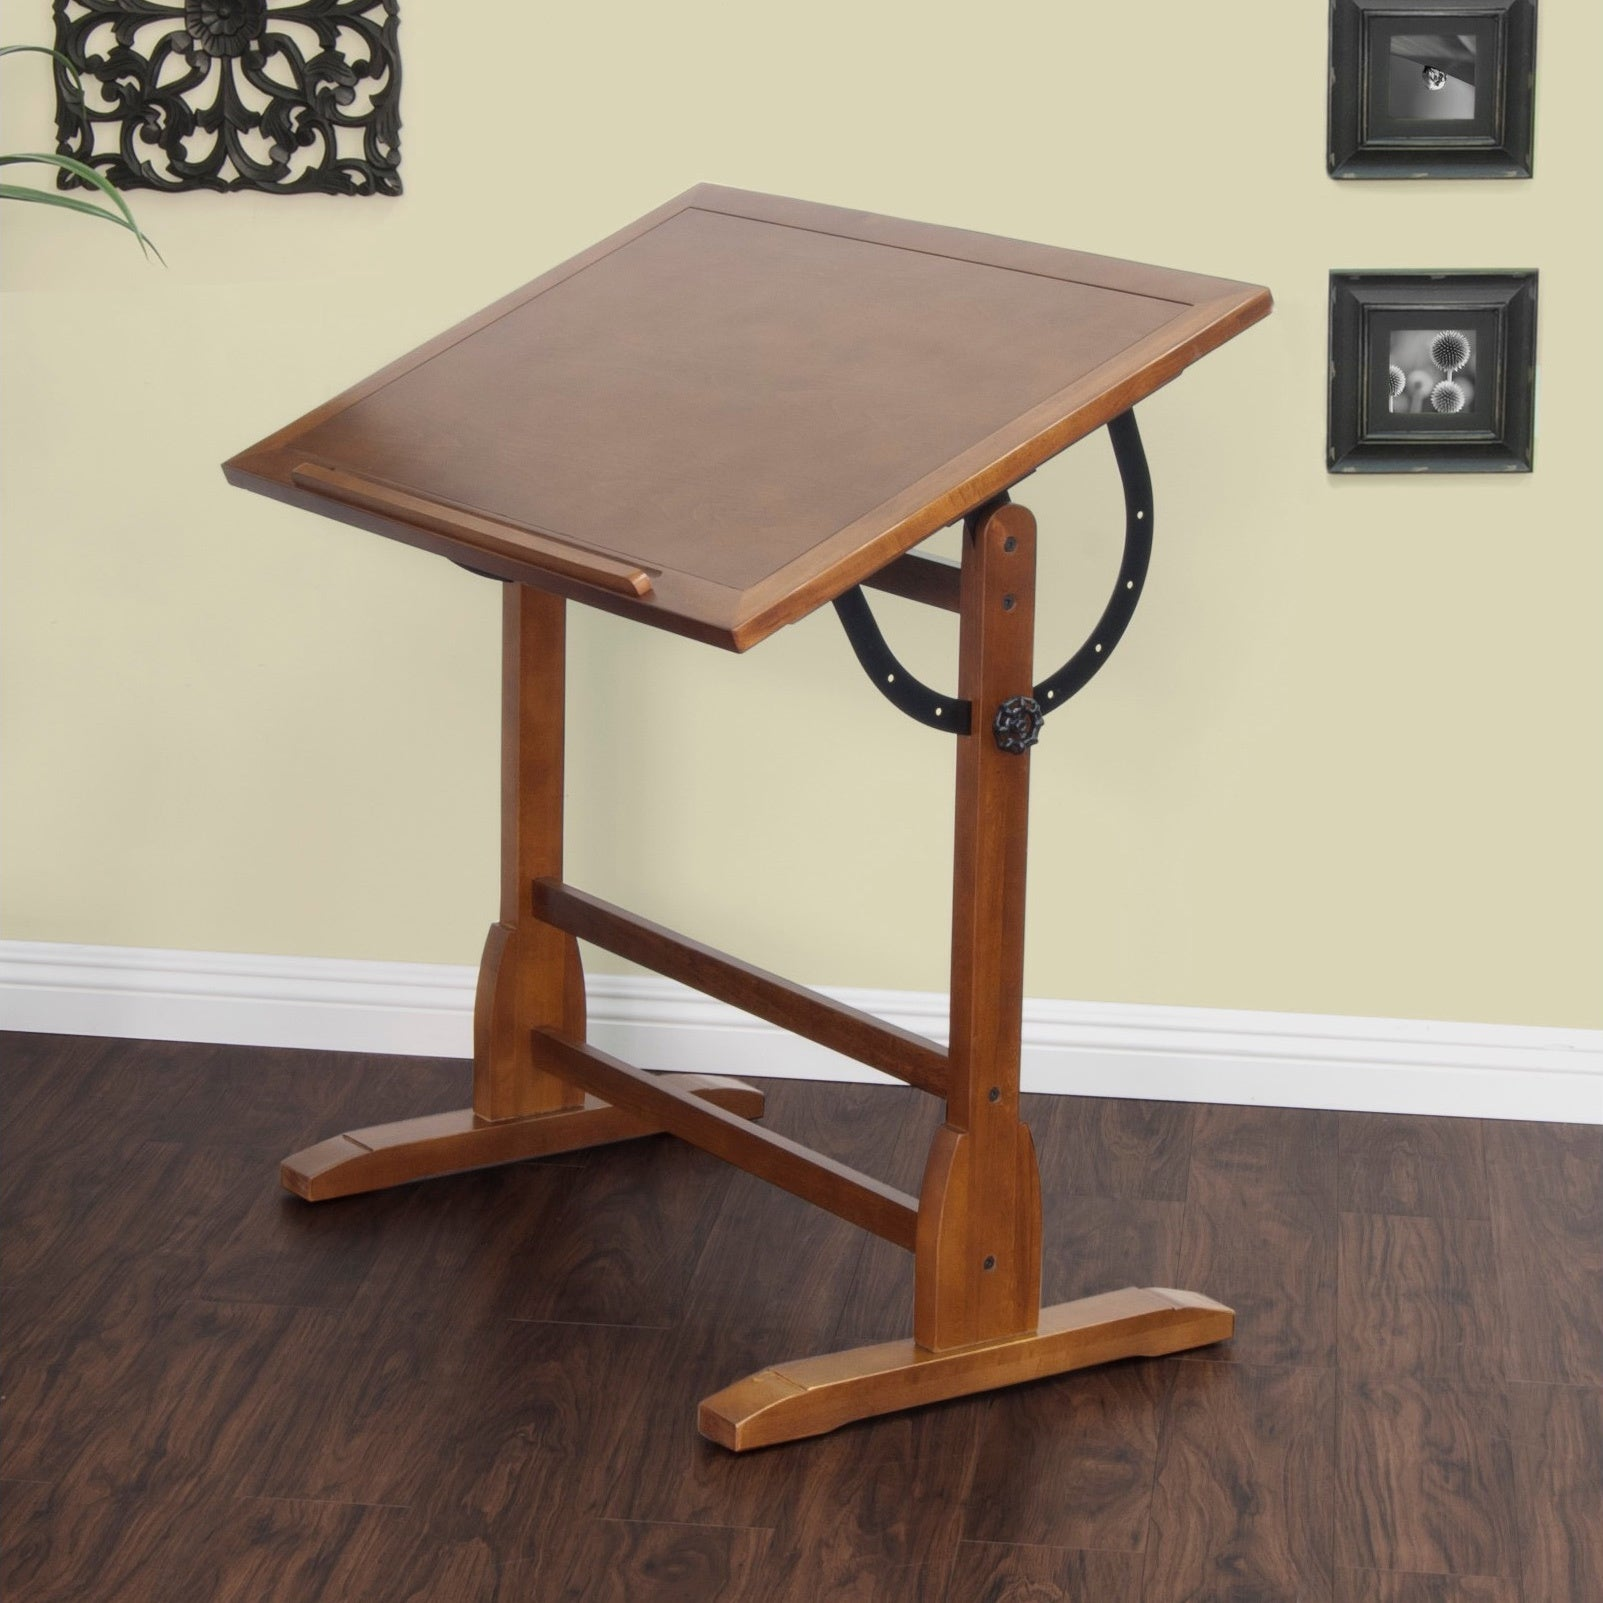 The Classic Design Of This Vintage Drafting Table By Studio Designs Is